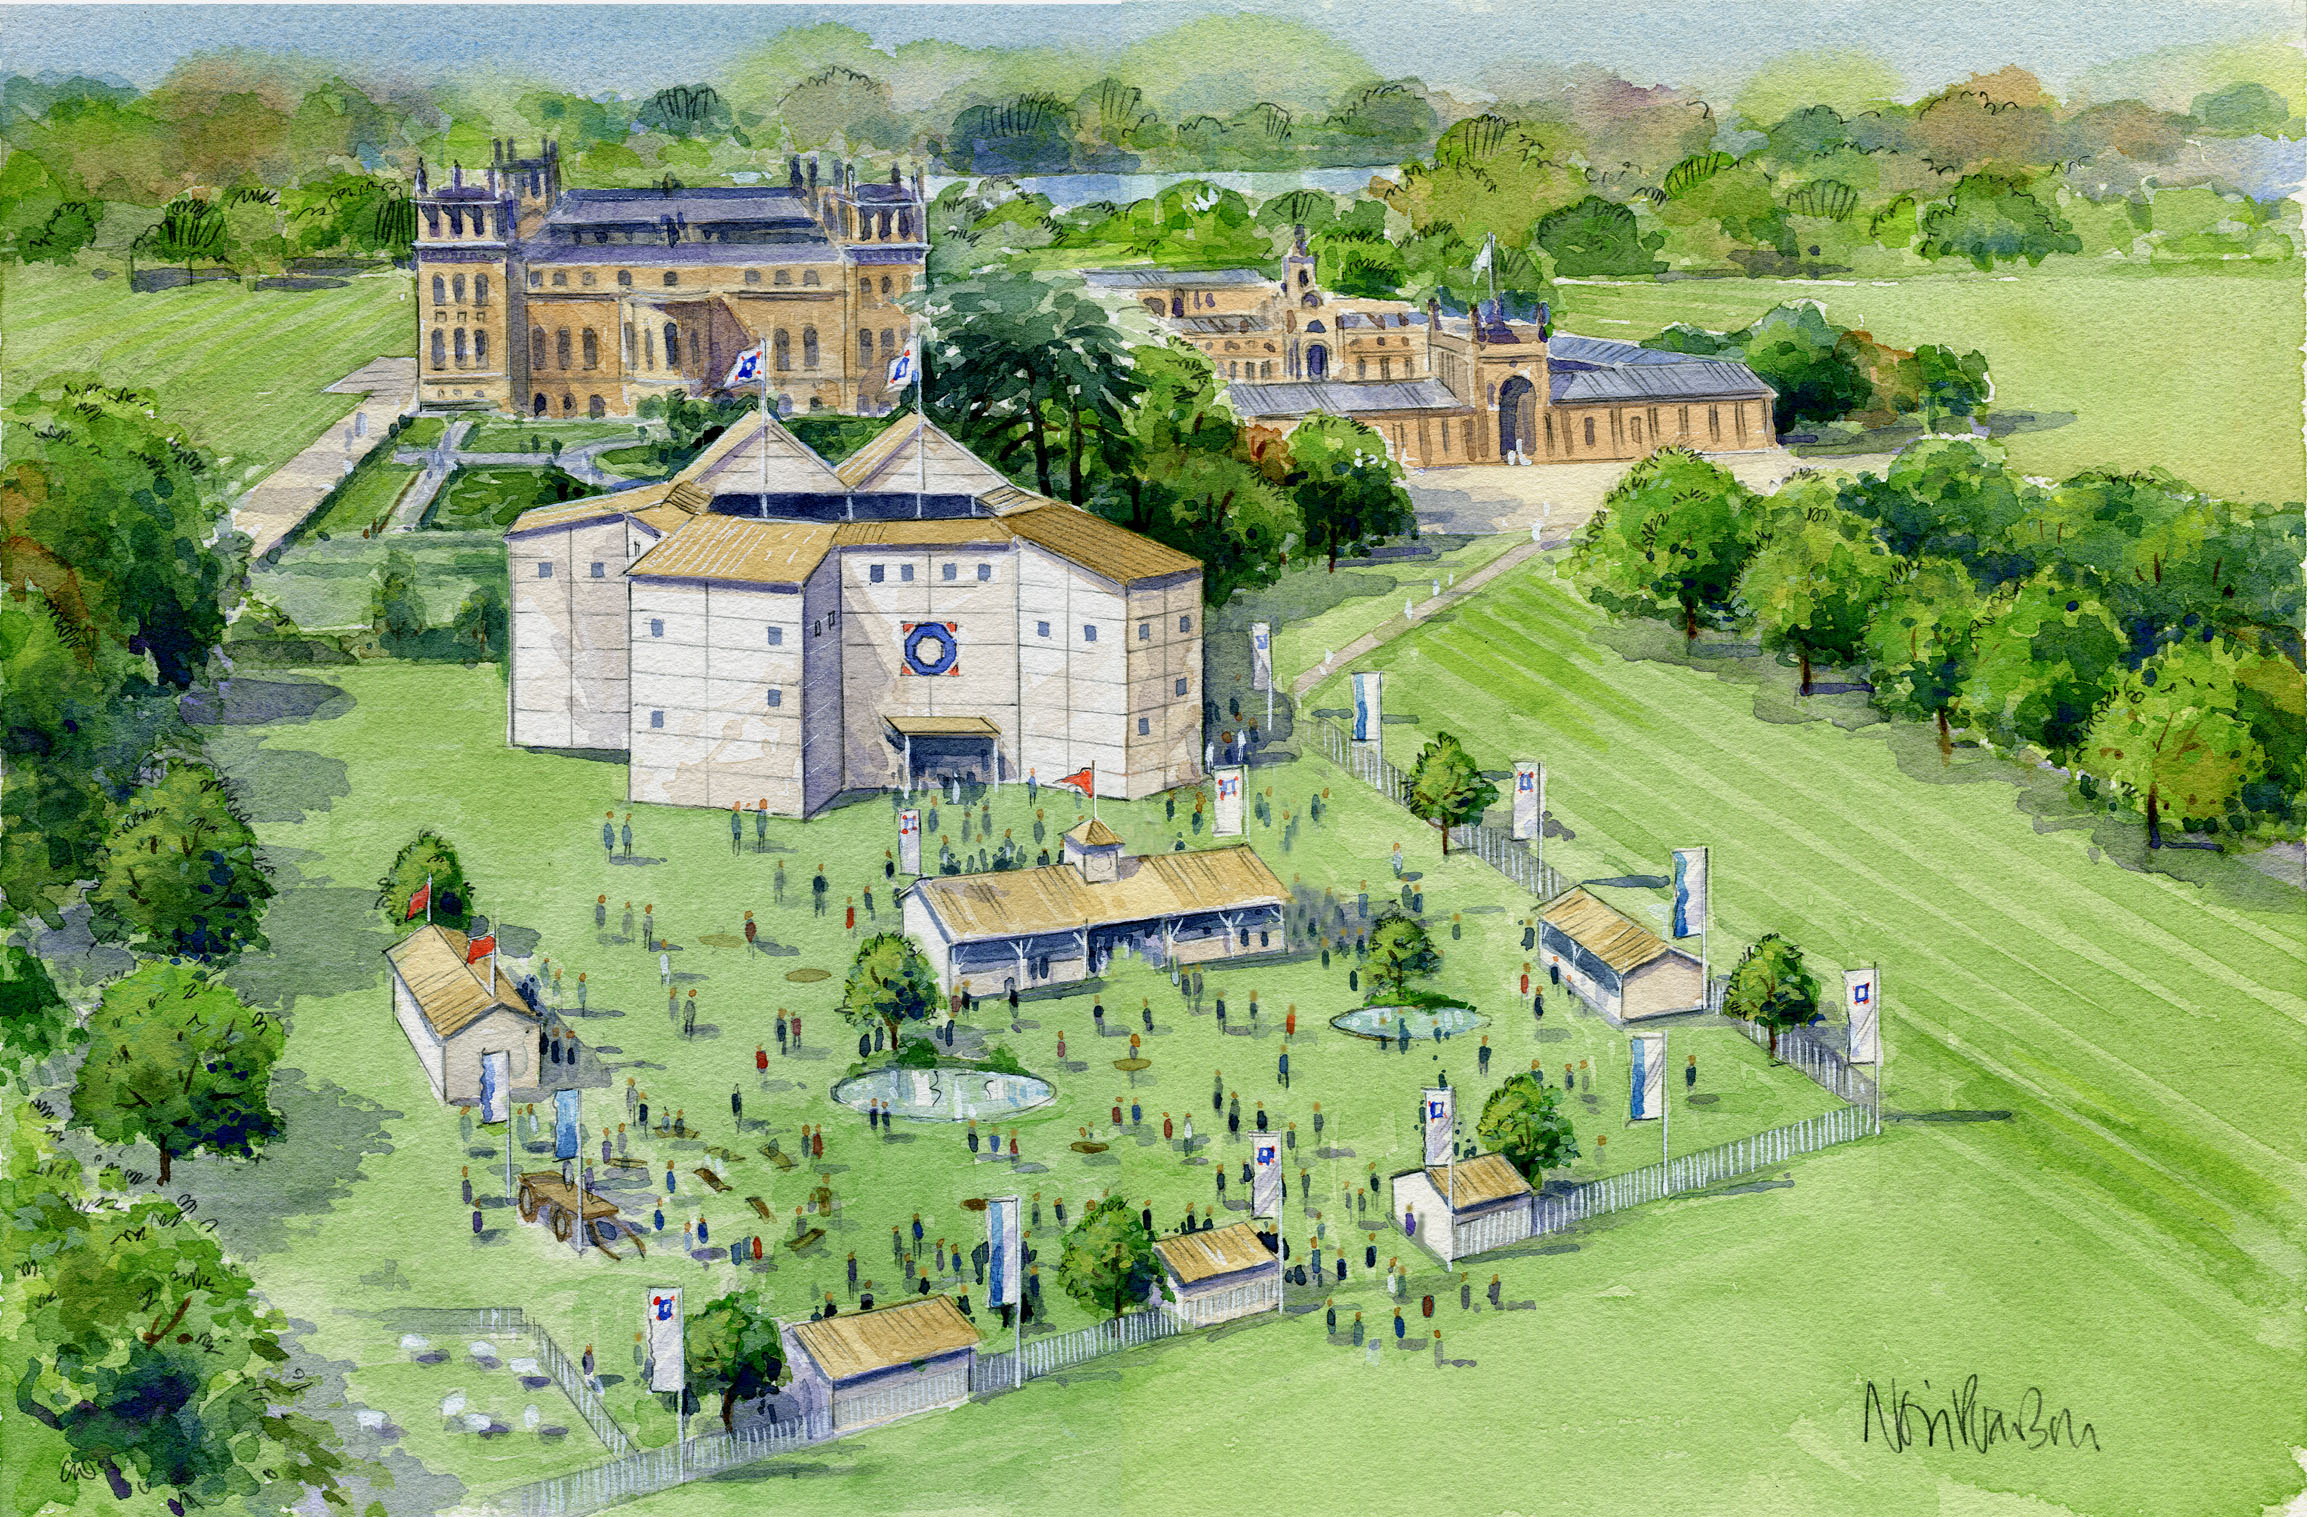 "From the 8th of the month until early September, Blenheim Palace, a word heritage site in Oxfordshire, is going to be home to a  pop up Shakespearean theatre . They are moving here following a highly acclaimed season in York last year and audiences can see four of ol' Billy's most popular plays - Romeo & Juliet, Richard III, Macbeth and A Midsummer Night's Dream. Now don't be put off by the words pop-up, this isn't a group of people huddling under a gazebo, quite the contrary; the structure is impressive, solid and convincingly similar to the kind of venue the original productions would have been staged, if you squint to ignore some of the scaffolding on show. Outside of the theatre will be a Shakespearean village, offering the finest Oxfordshire fare: NB, Local ales and snacks to keep everyone suitably energised in the summer sun. In addition there will be an 'array of 'wagon' entertainment.' which both intrigues and confuses us in equal measure. Tickets are available via the website or SEE Tickets and you can either choose to just get production tickets or combine with access to the majestic Blenheim Palace and gardens making a real day of it. Here's hoping the sun stays out as frankly so far this summer ""The weather doth protest too much"" for our liking.   Facebook  